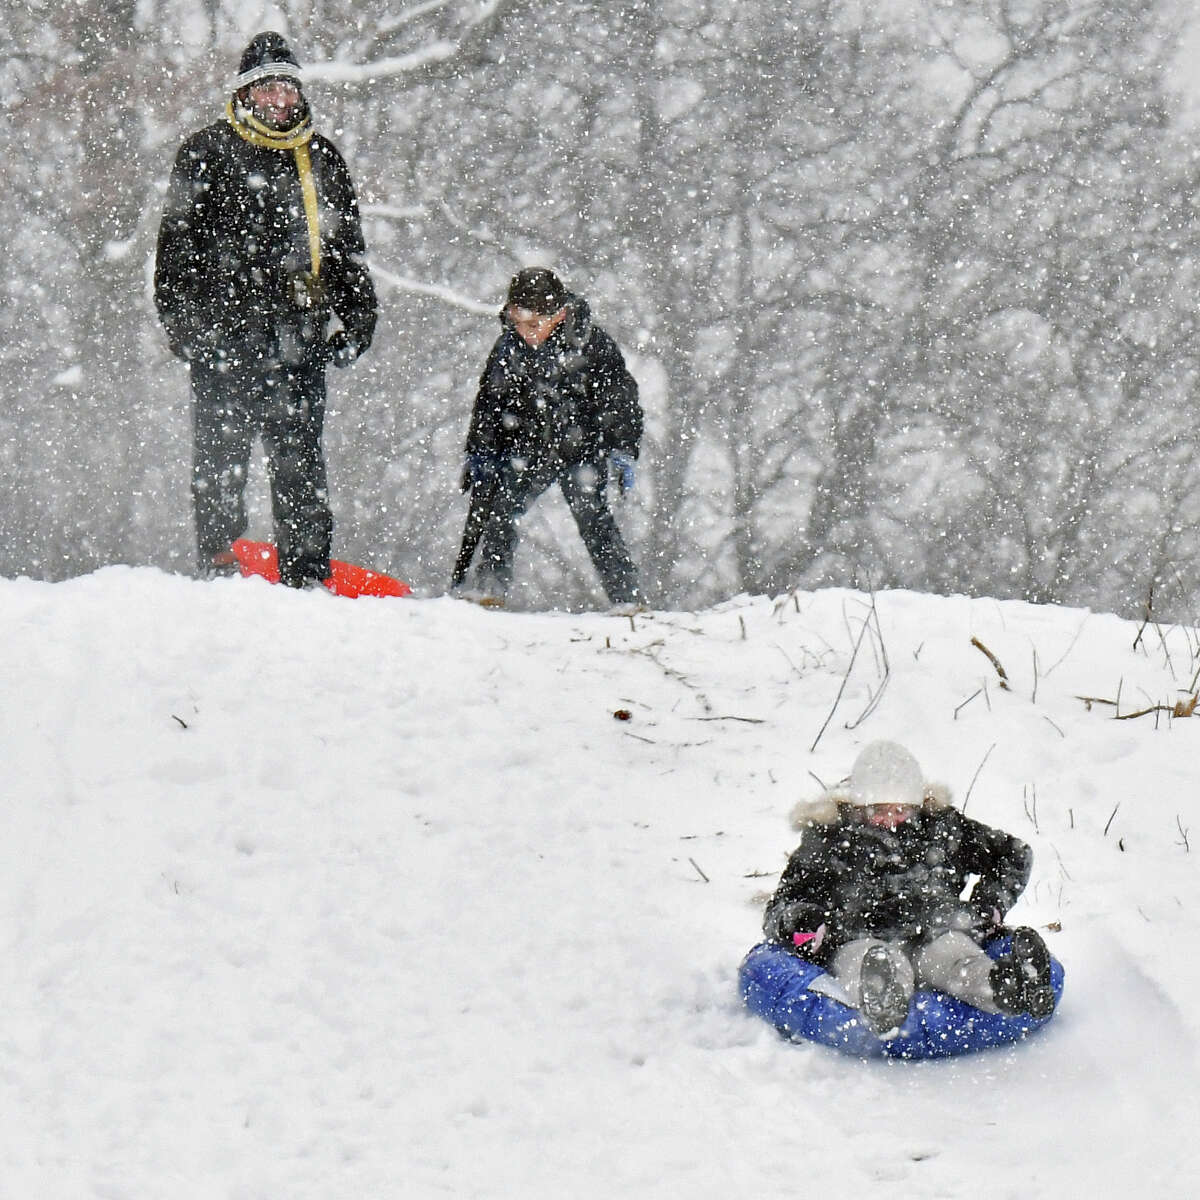 Dannie Chapman, left, of Albany, takes his son Yusuf, 6, and daughter Hafsa, right, 11 sledding as snow continues to fall in Frear Park Wednesday Feb. 7, 2018 in Troy, NY. (John Carl D'Annibale/Times Union)